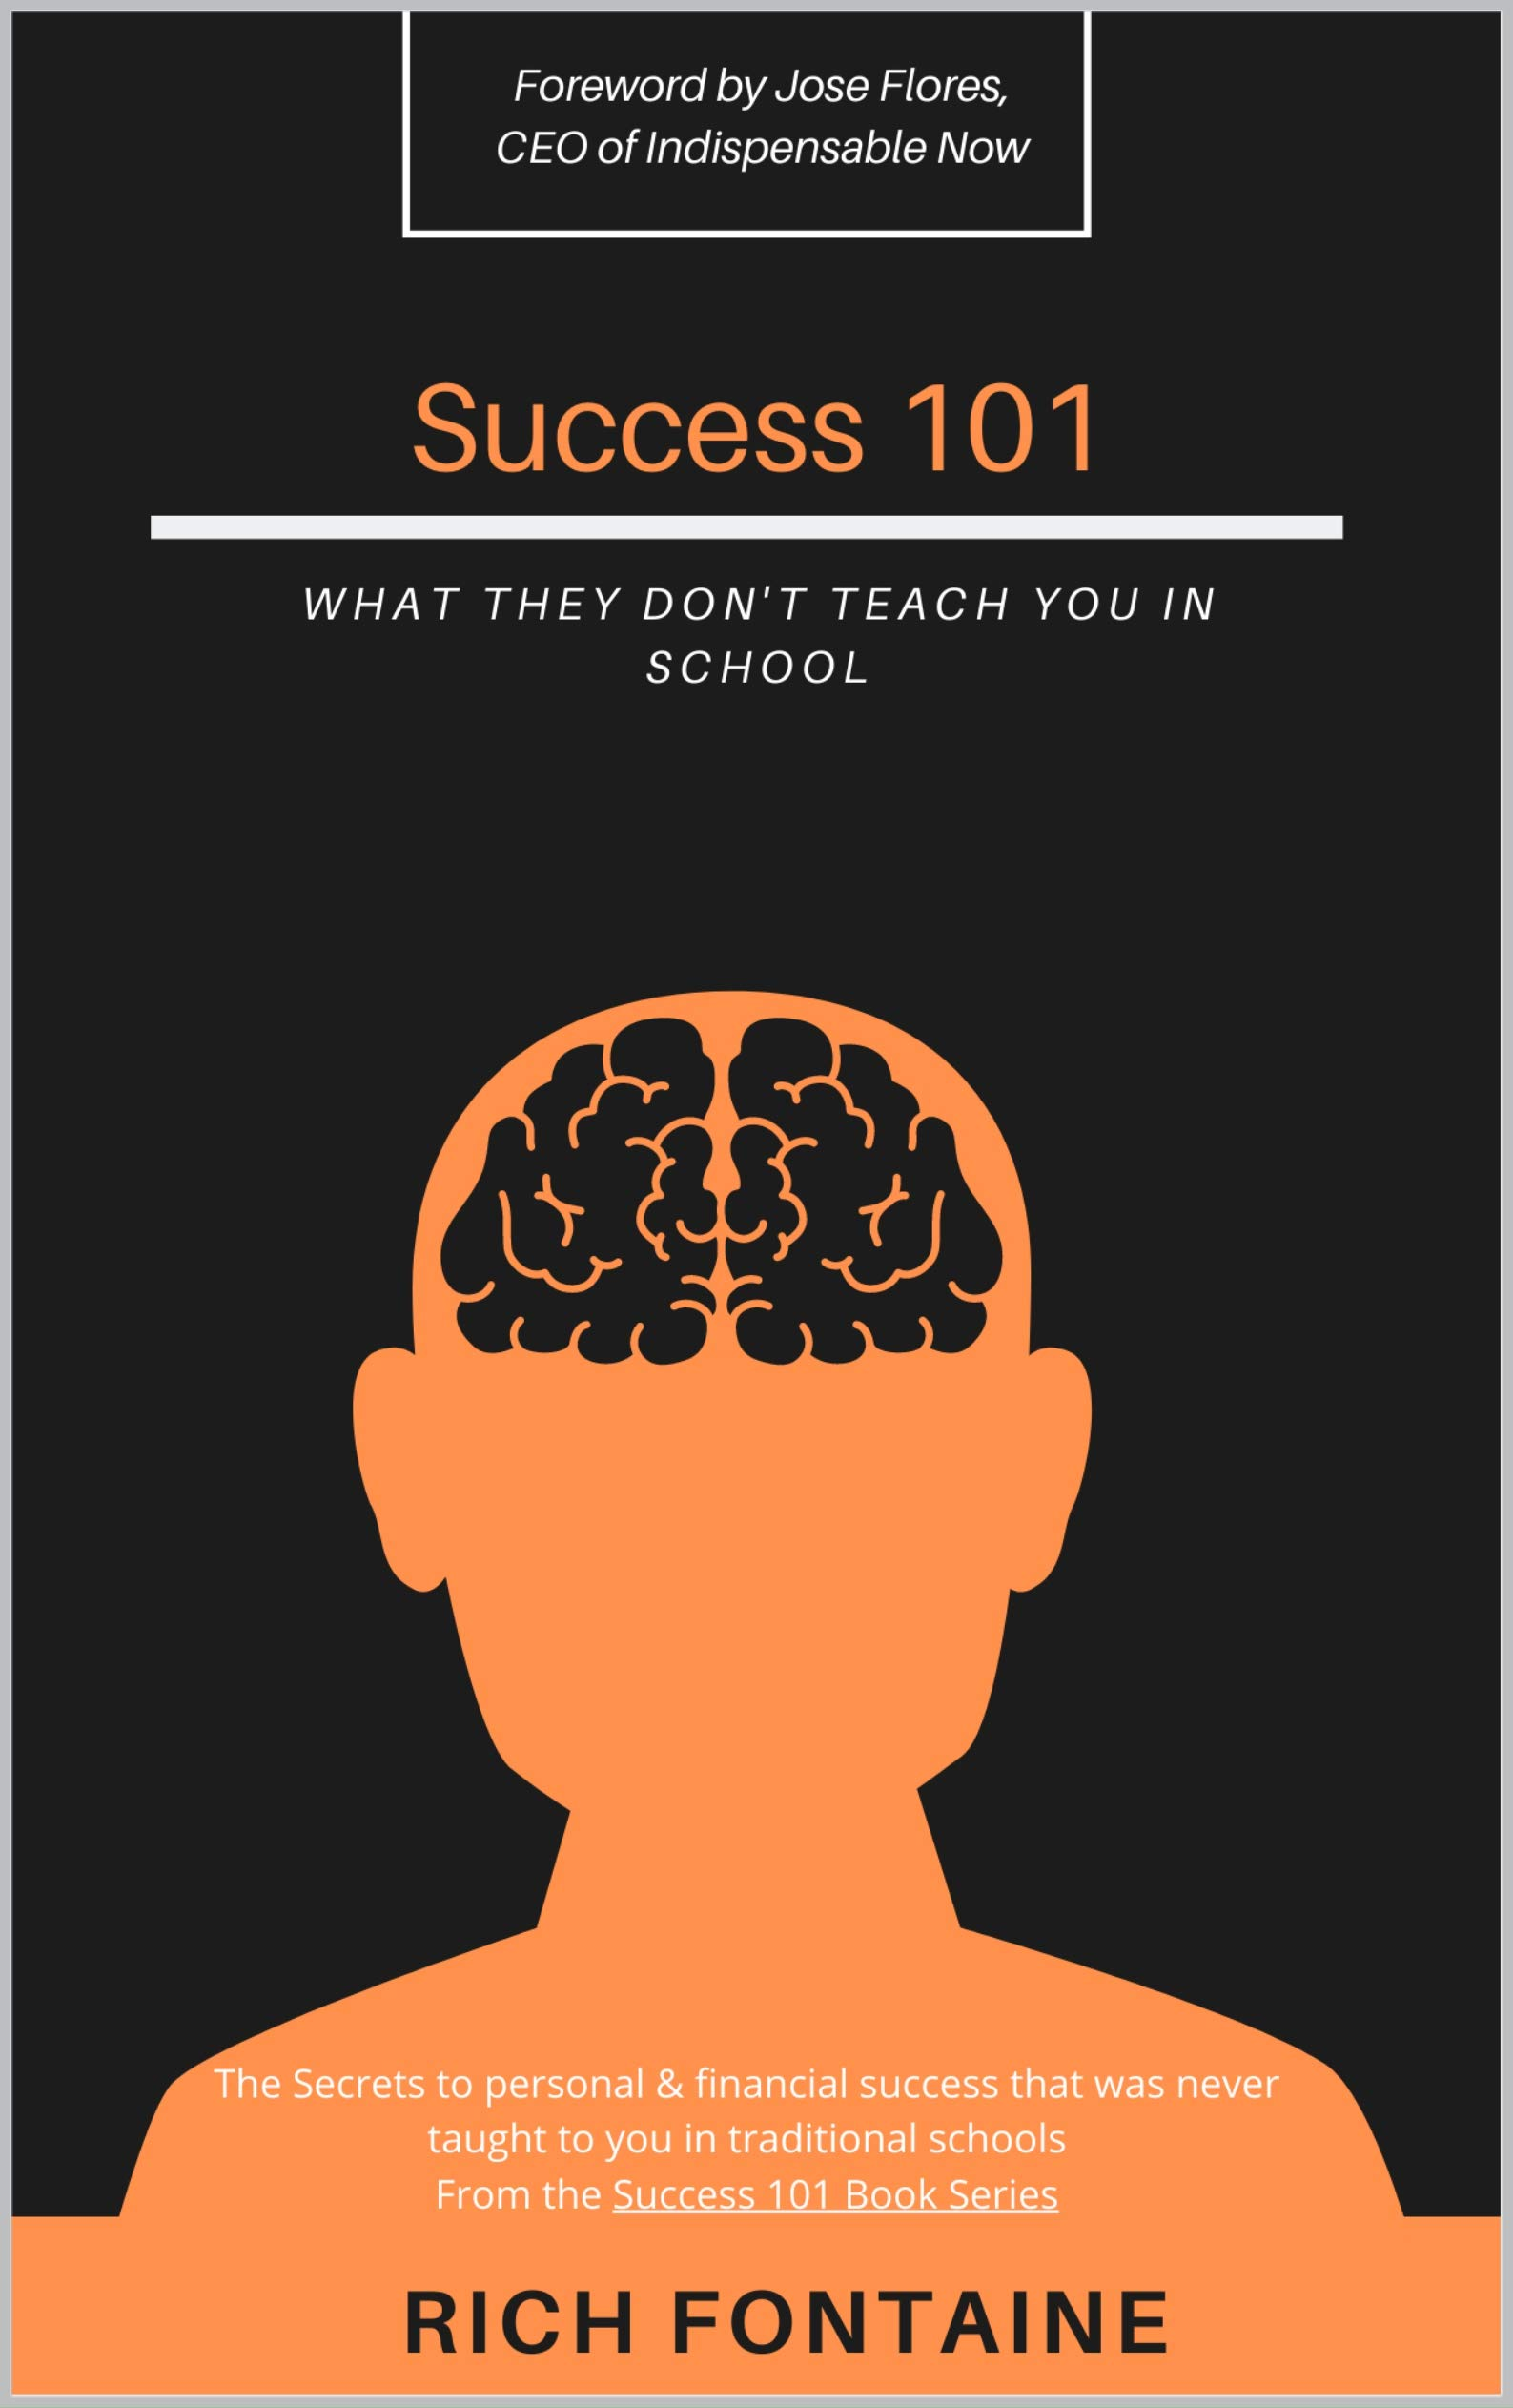 Success 101: What they don't teach in school